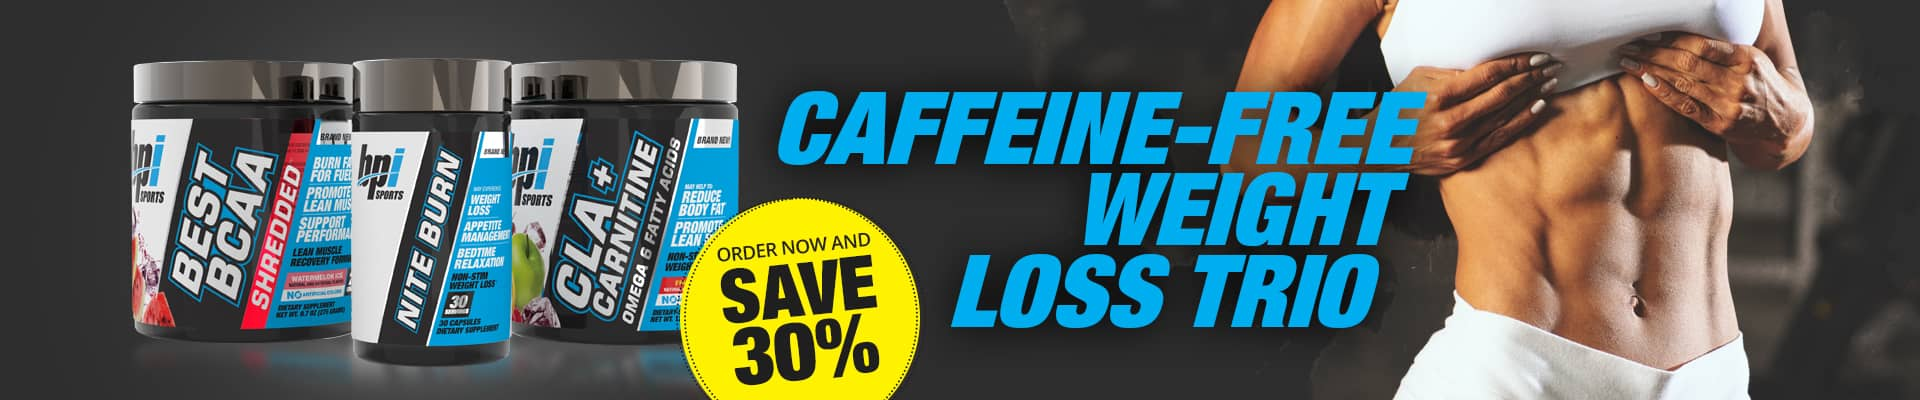 Caffeine-Free Weight Loss Trio Promo